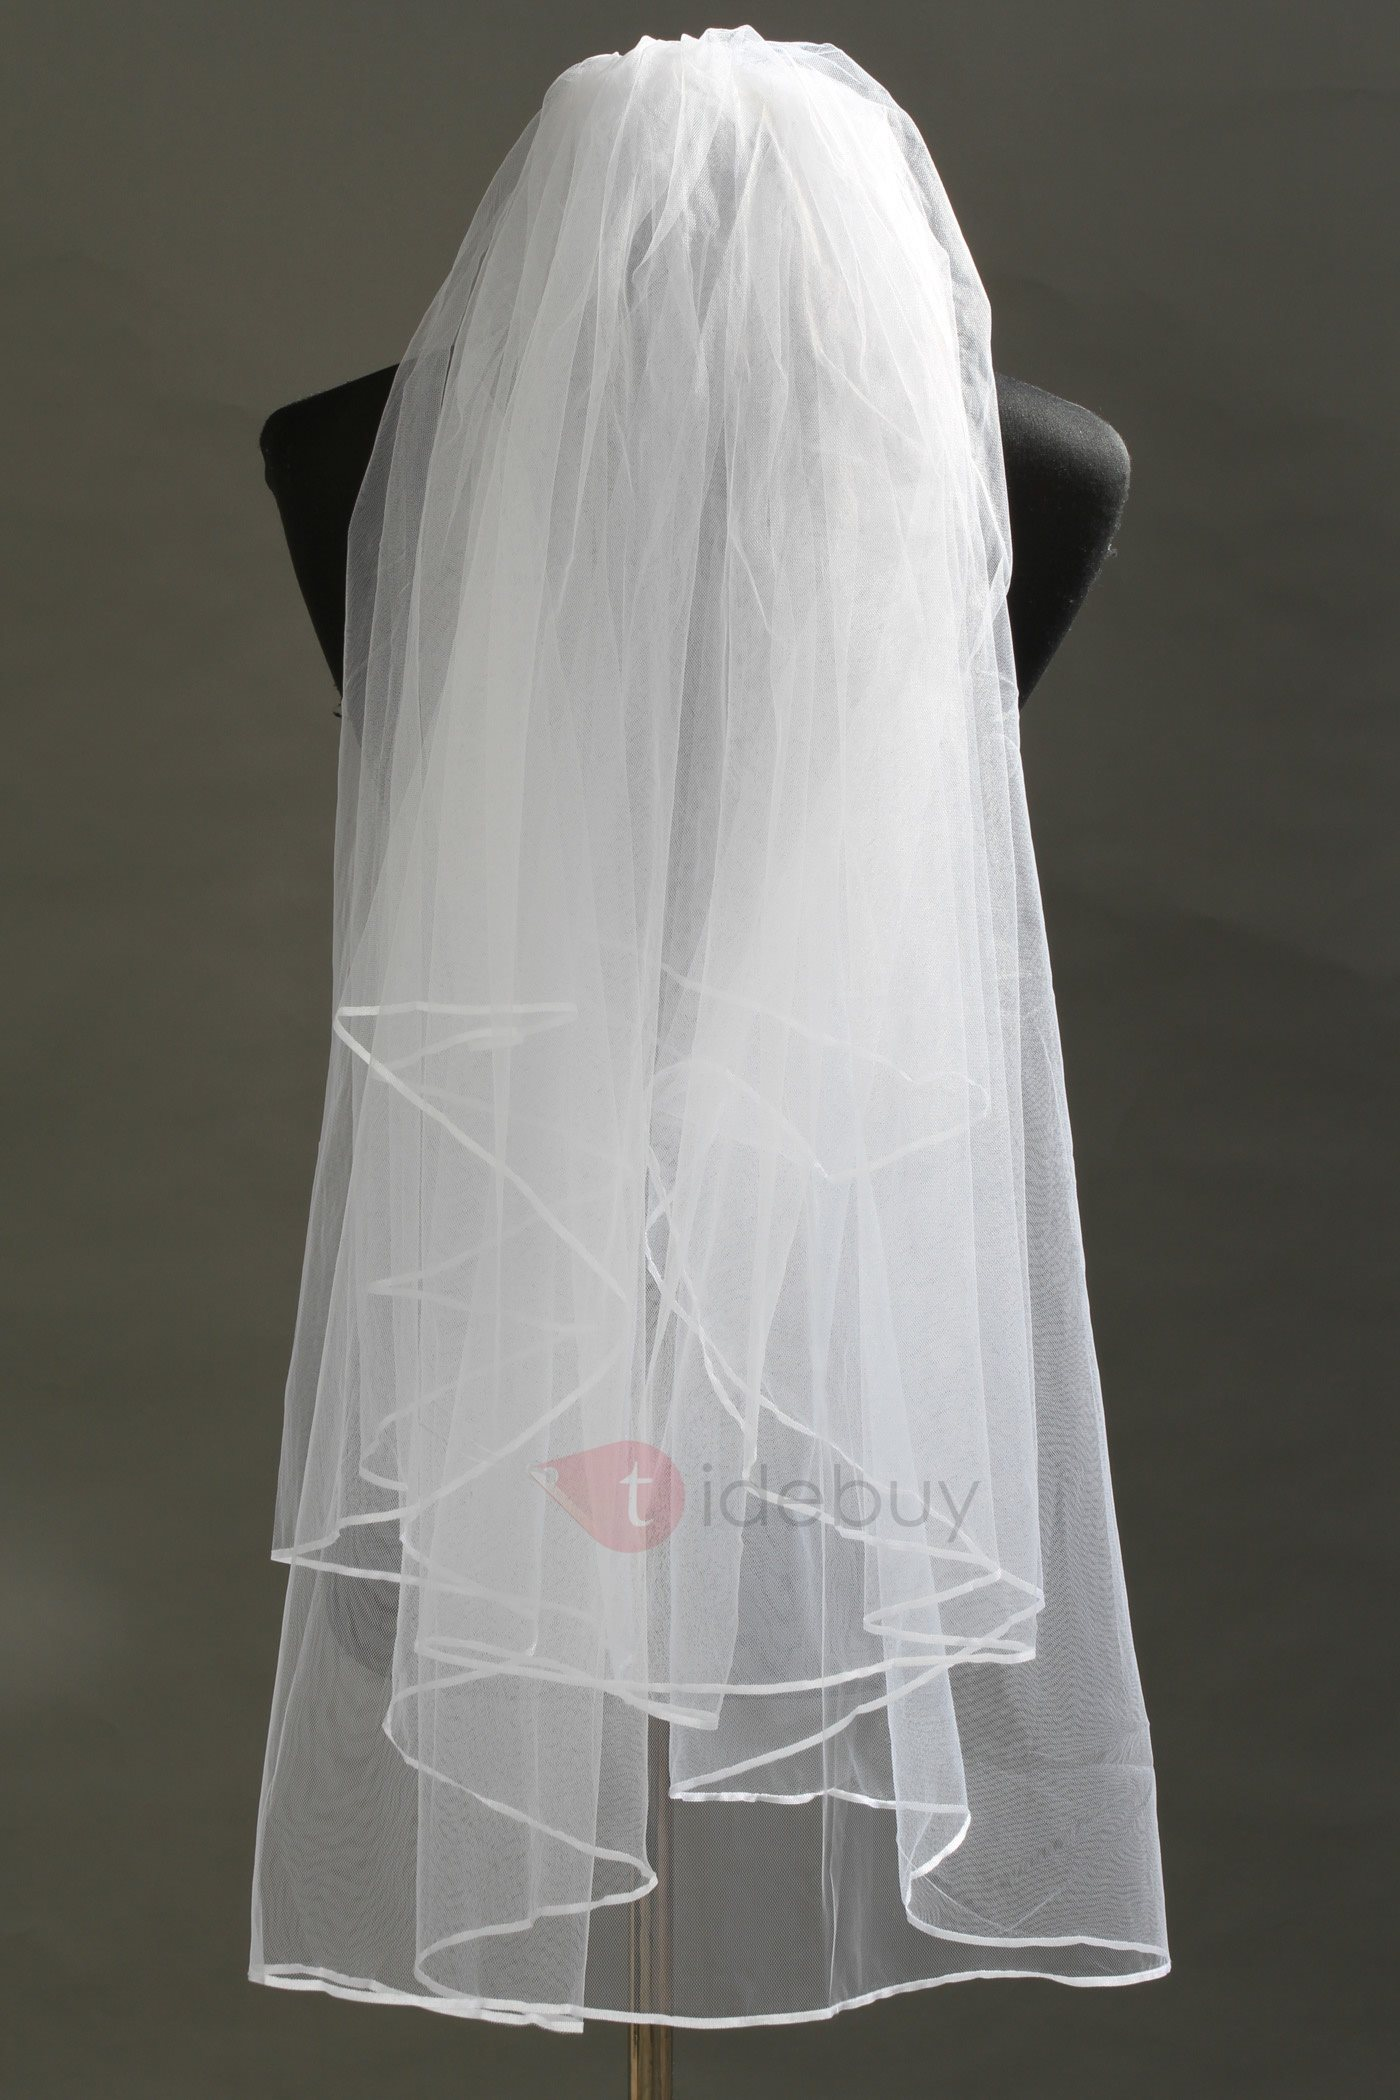 Stylish Tidebuy 2 Layer Elbow Tull Wedding Bridal Veil